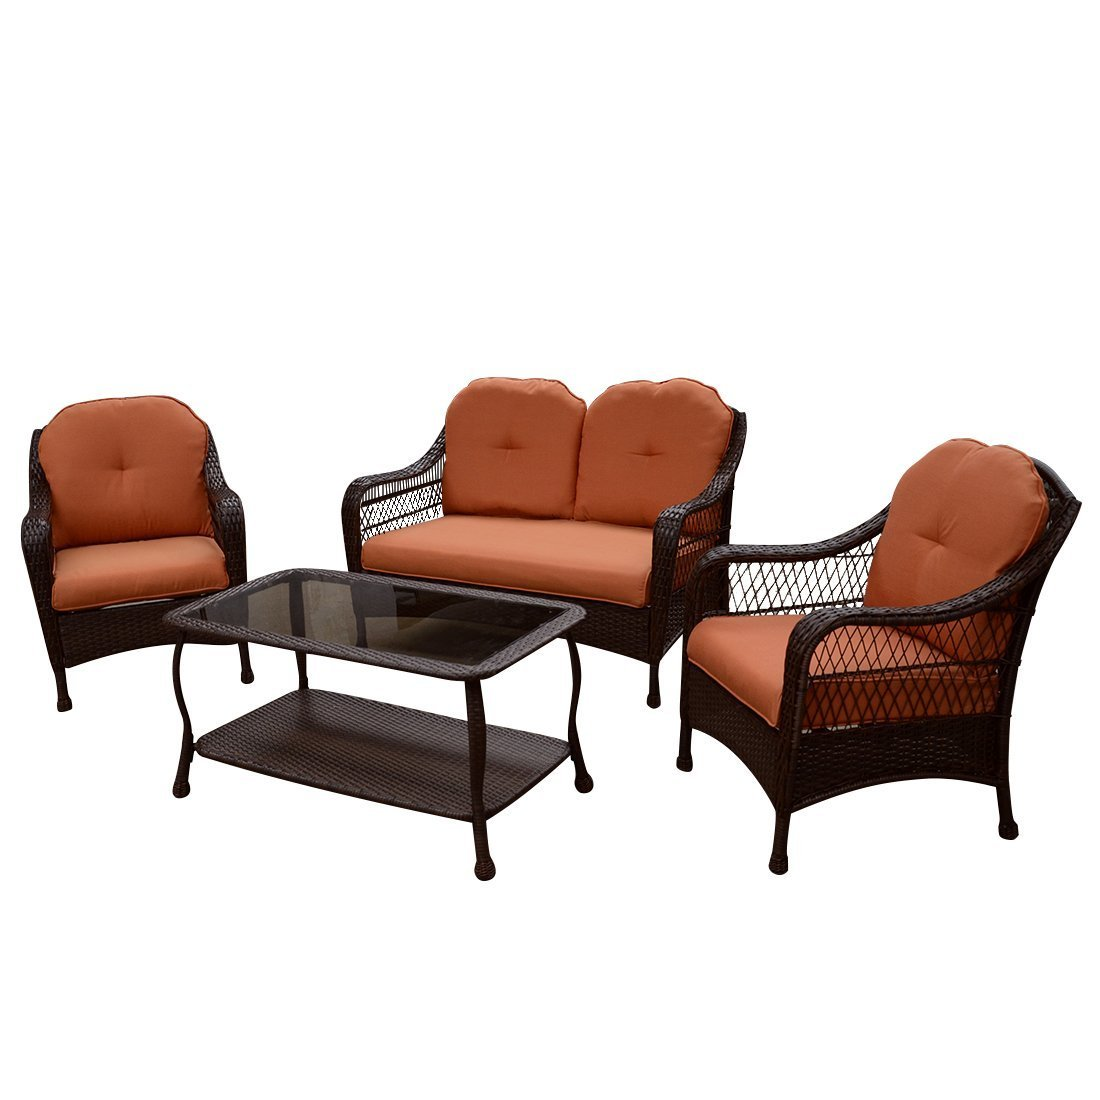 Amazon.com : All Weather Patio Outdoor Furniture Used For  Campfires/BackYard/Pool/Deck : Outdoor And Patio Furniture Sets : Garden U0026  Outdoor